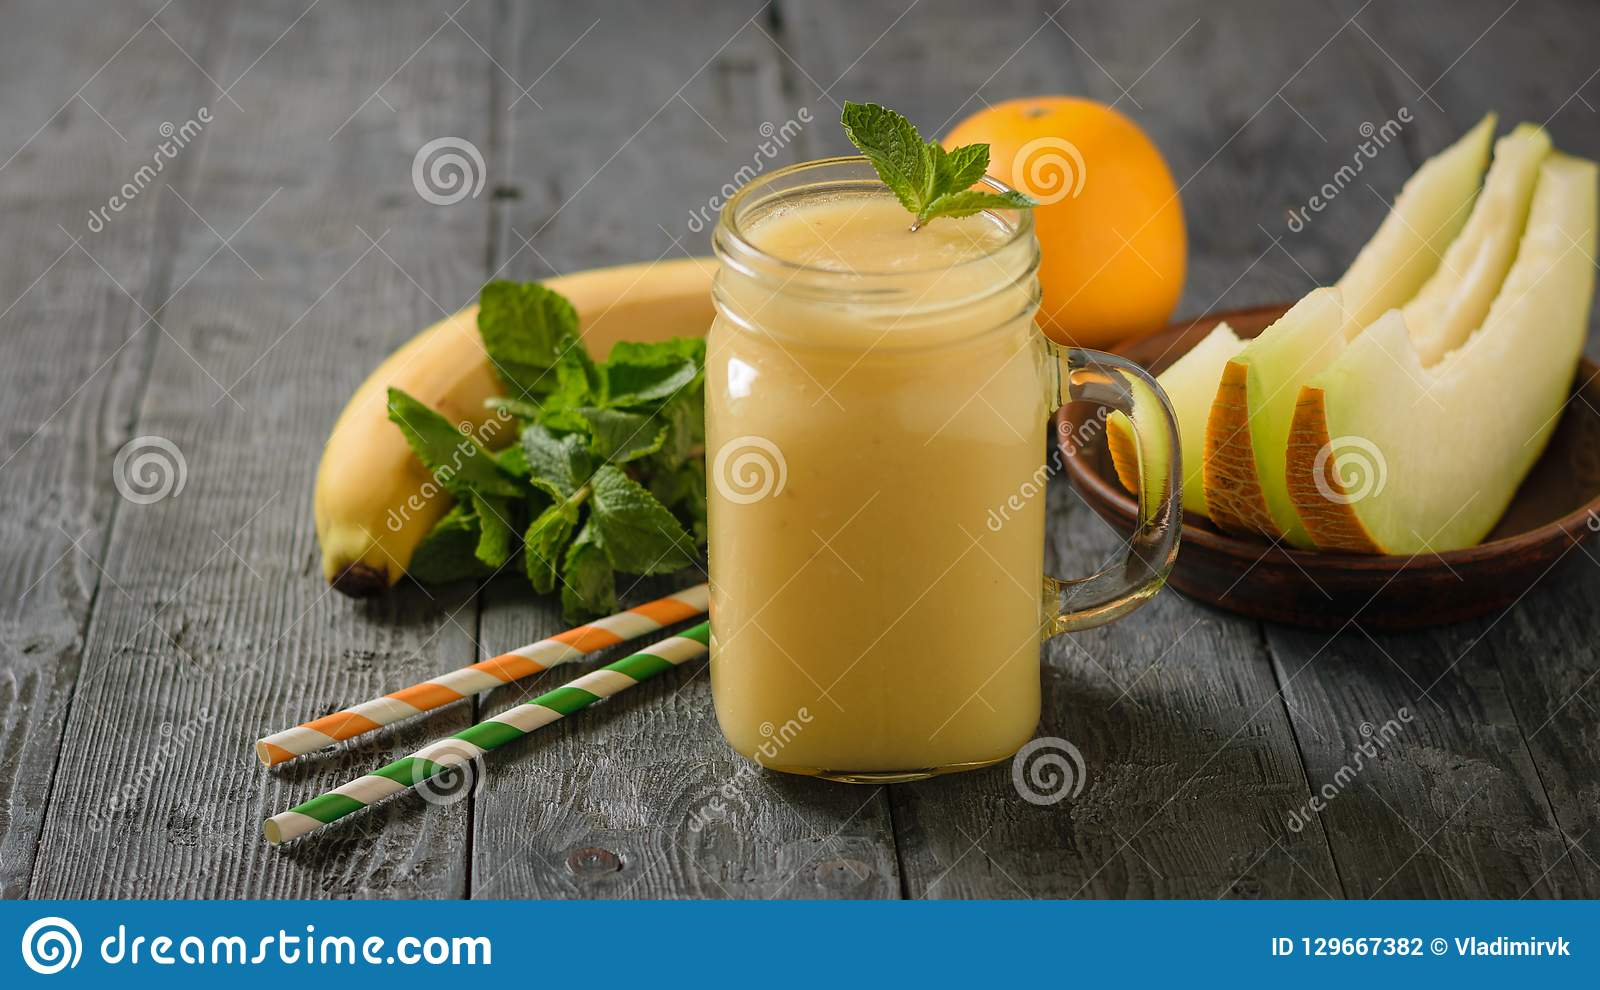 Melon Smoothie Mug With Mint Leaves, Melon Slices And Cocktail Tubes